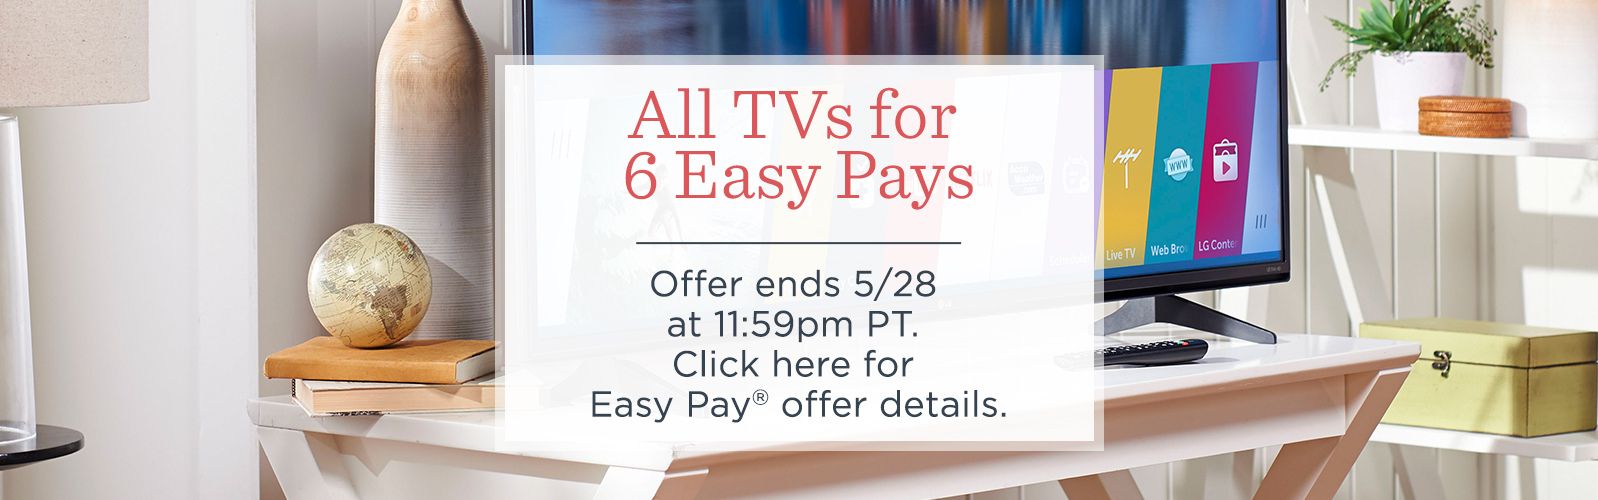 All TVs for 6 Easy Pays. Offer ends 5/28 at 11:59pm PT.   Click here for Easy Pay® offer details.